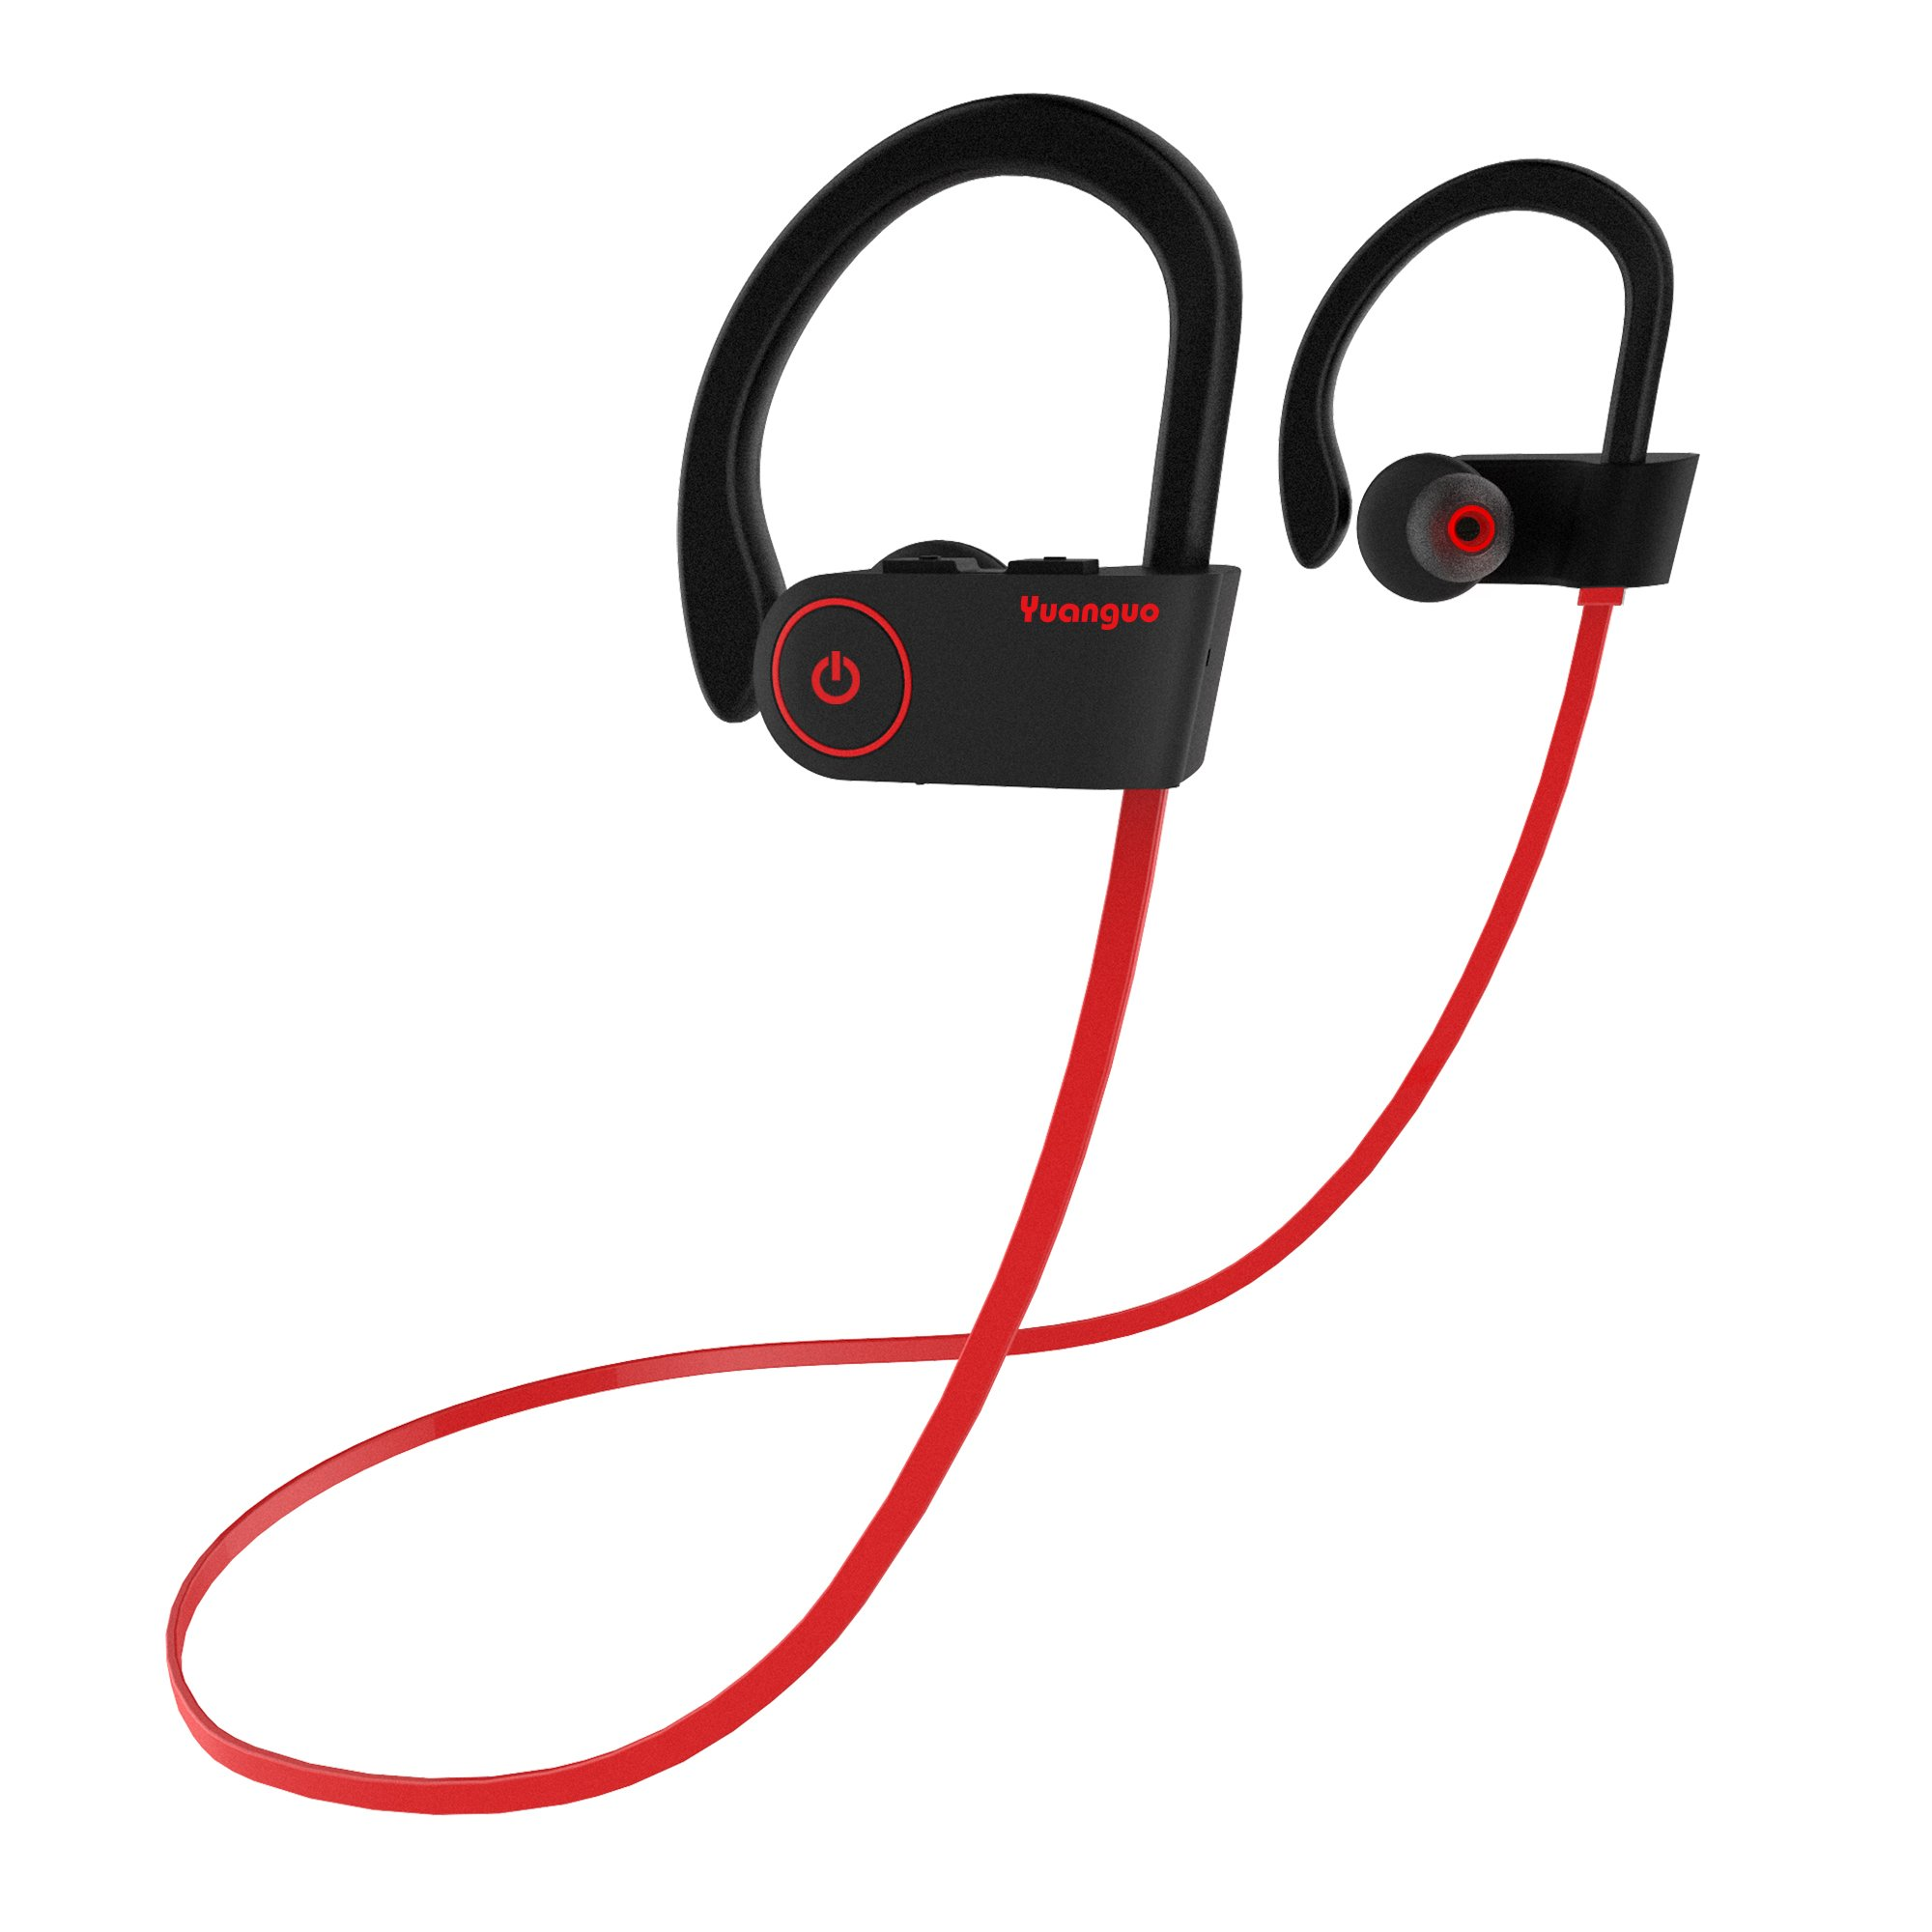 Cuffie Bluetooth V4.1 Arbily Wireless Bluetooth Auricolare In-Ear Stereo  Sports Noise Cancelling Cuffie Sportive headphone per Running   Impermeabile  ... 9713b77aefb9